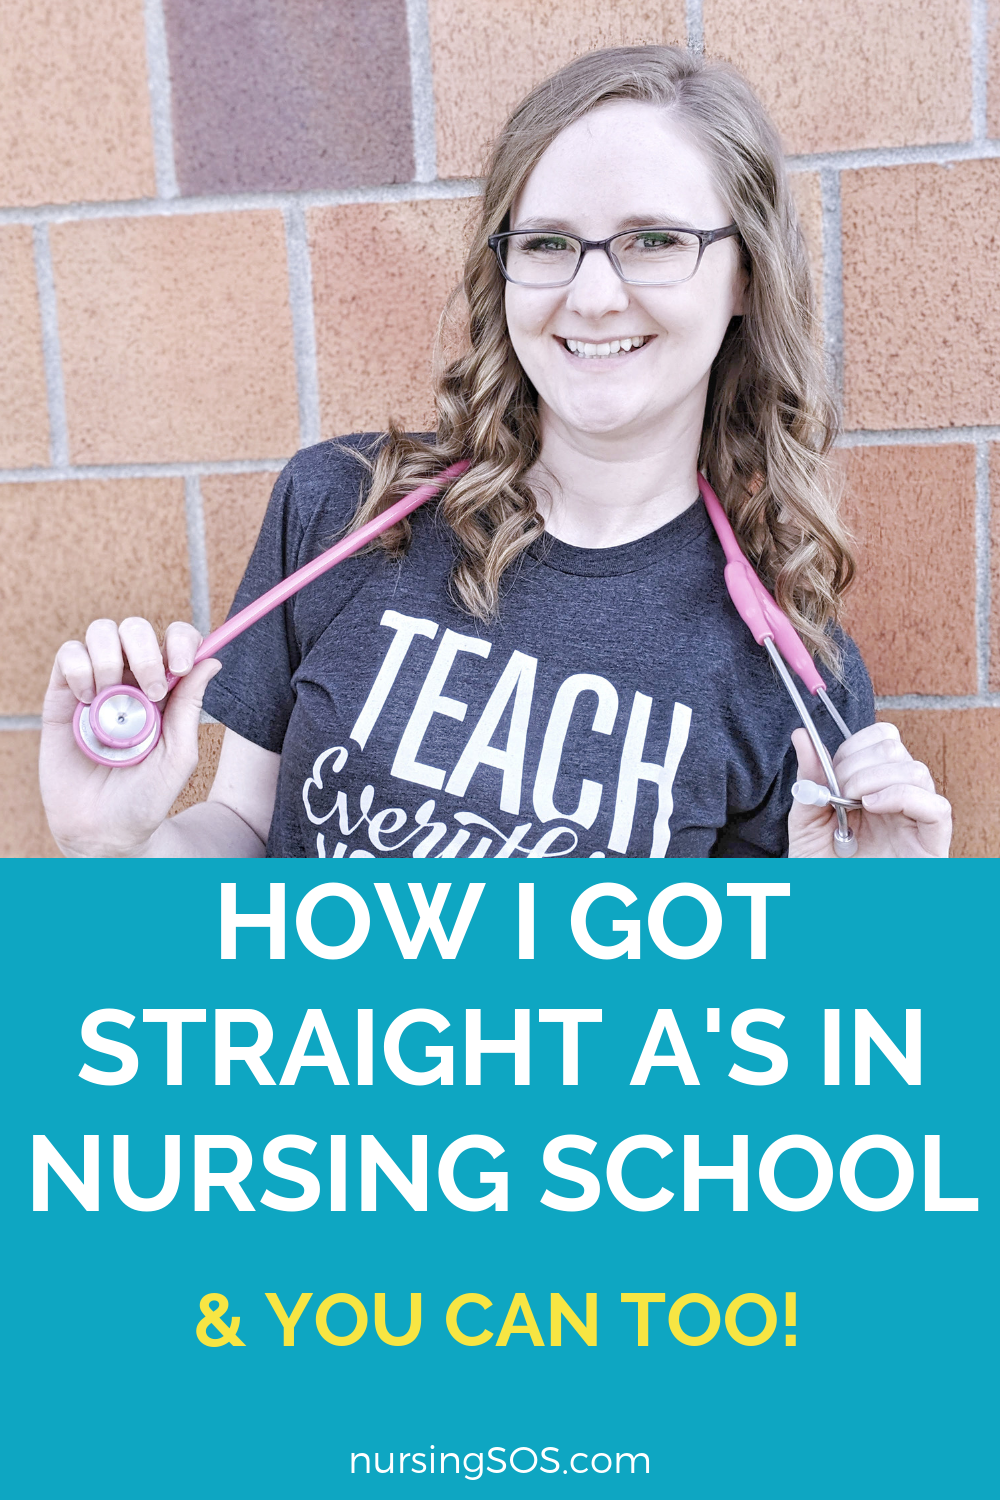 Learn how I got straight A's in nursing school and you can too! Learn these nursing school student studying tips about how to PASS nursing school, How to study the important concepts and fully understand them, How to focus your efforts on the topics you don't fully understand, and time management tips! Click here to #nursingstudents